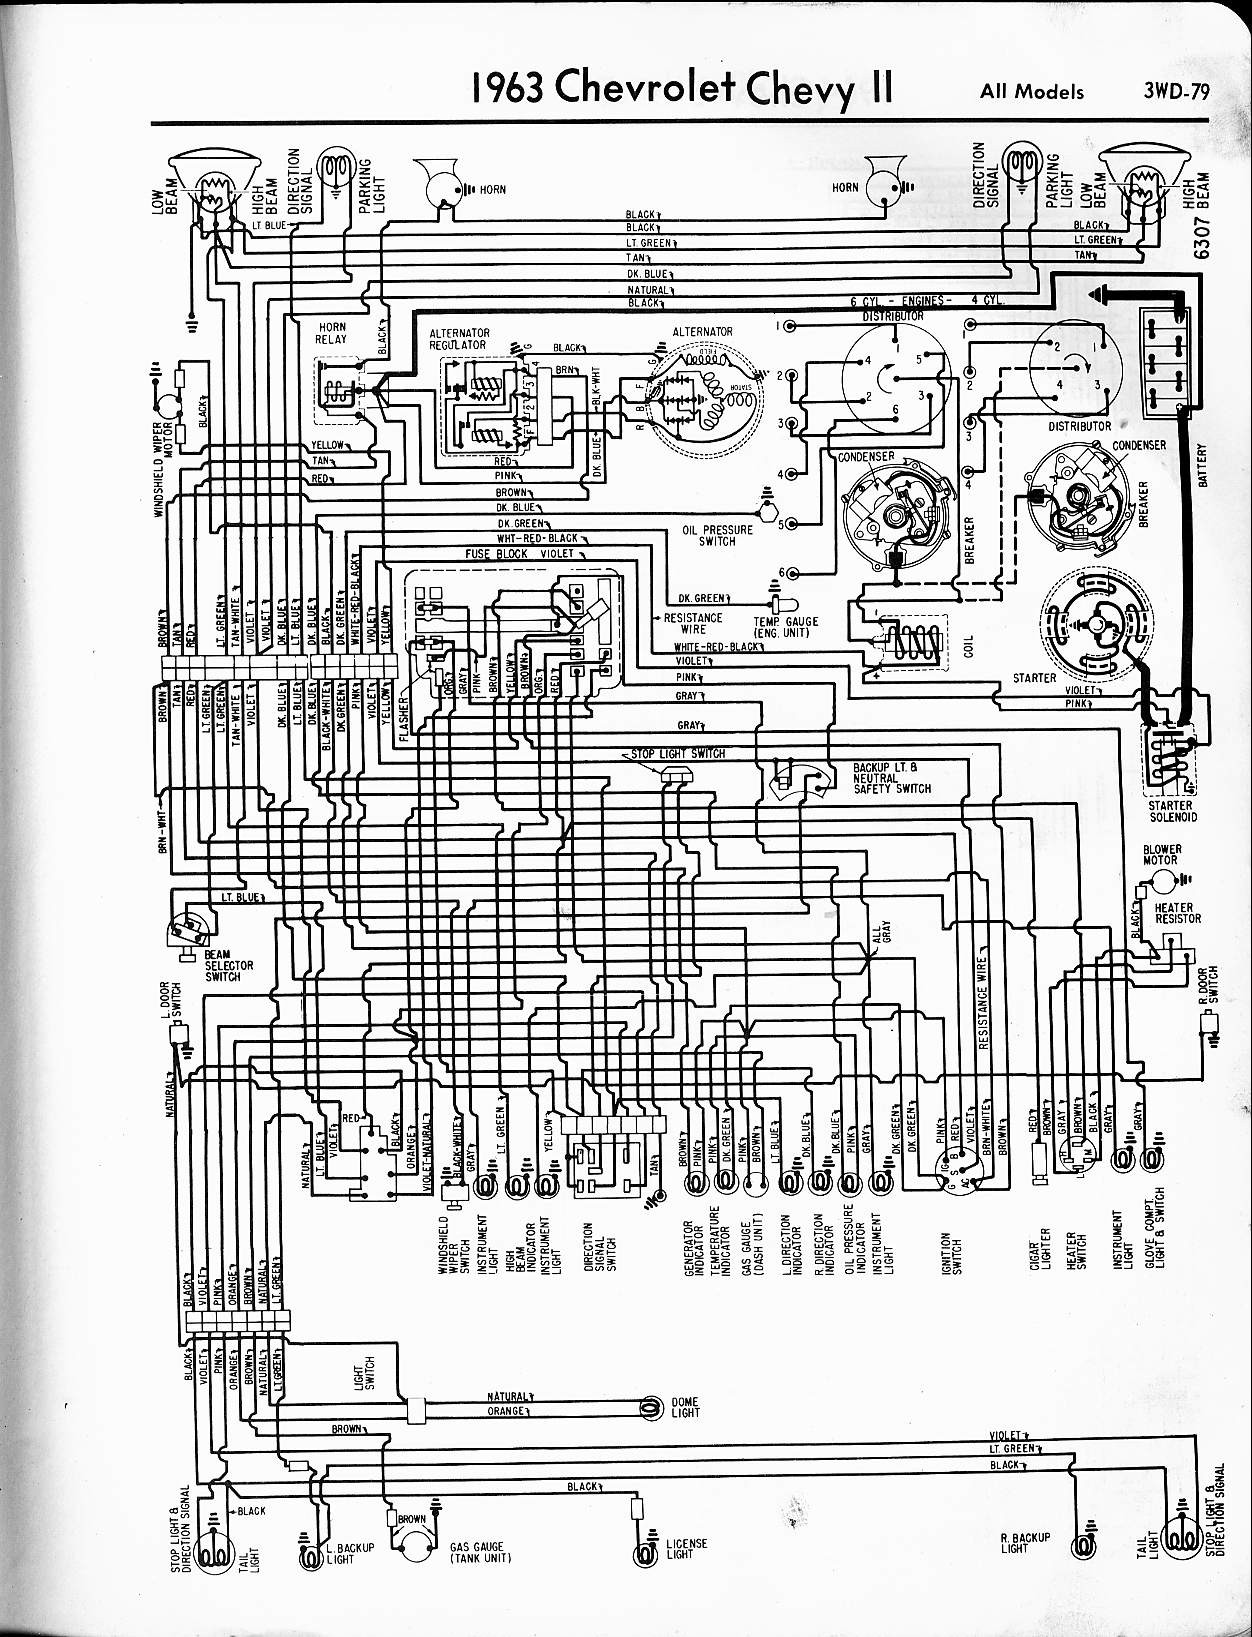 1971 Chevy C10 Wiring Diagram | Wiring Library